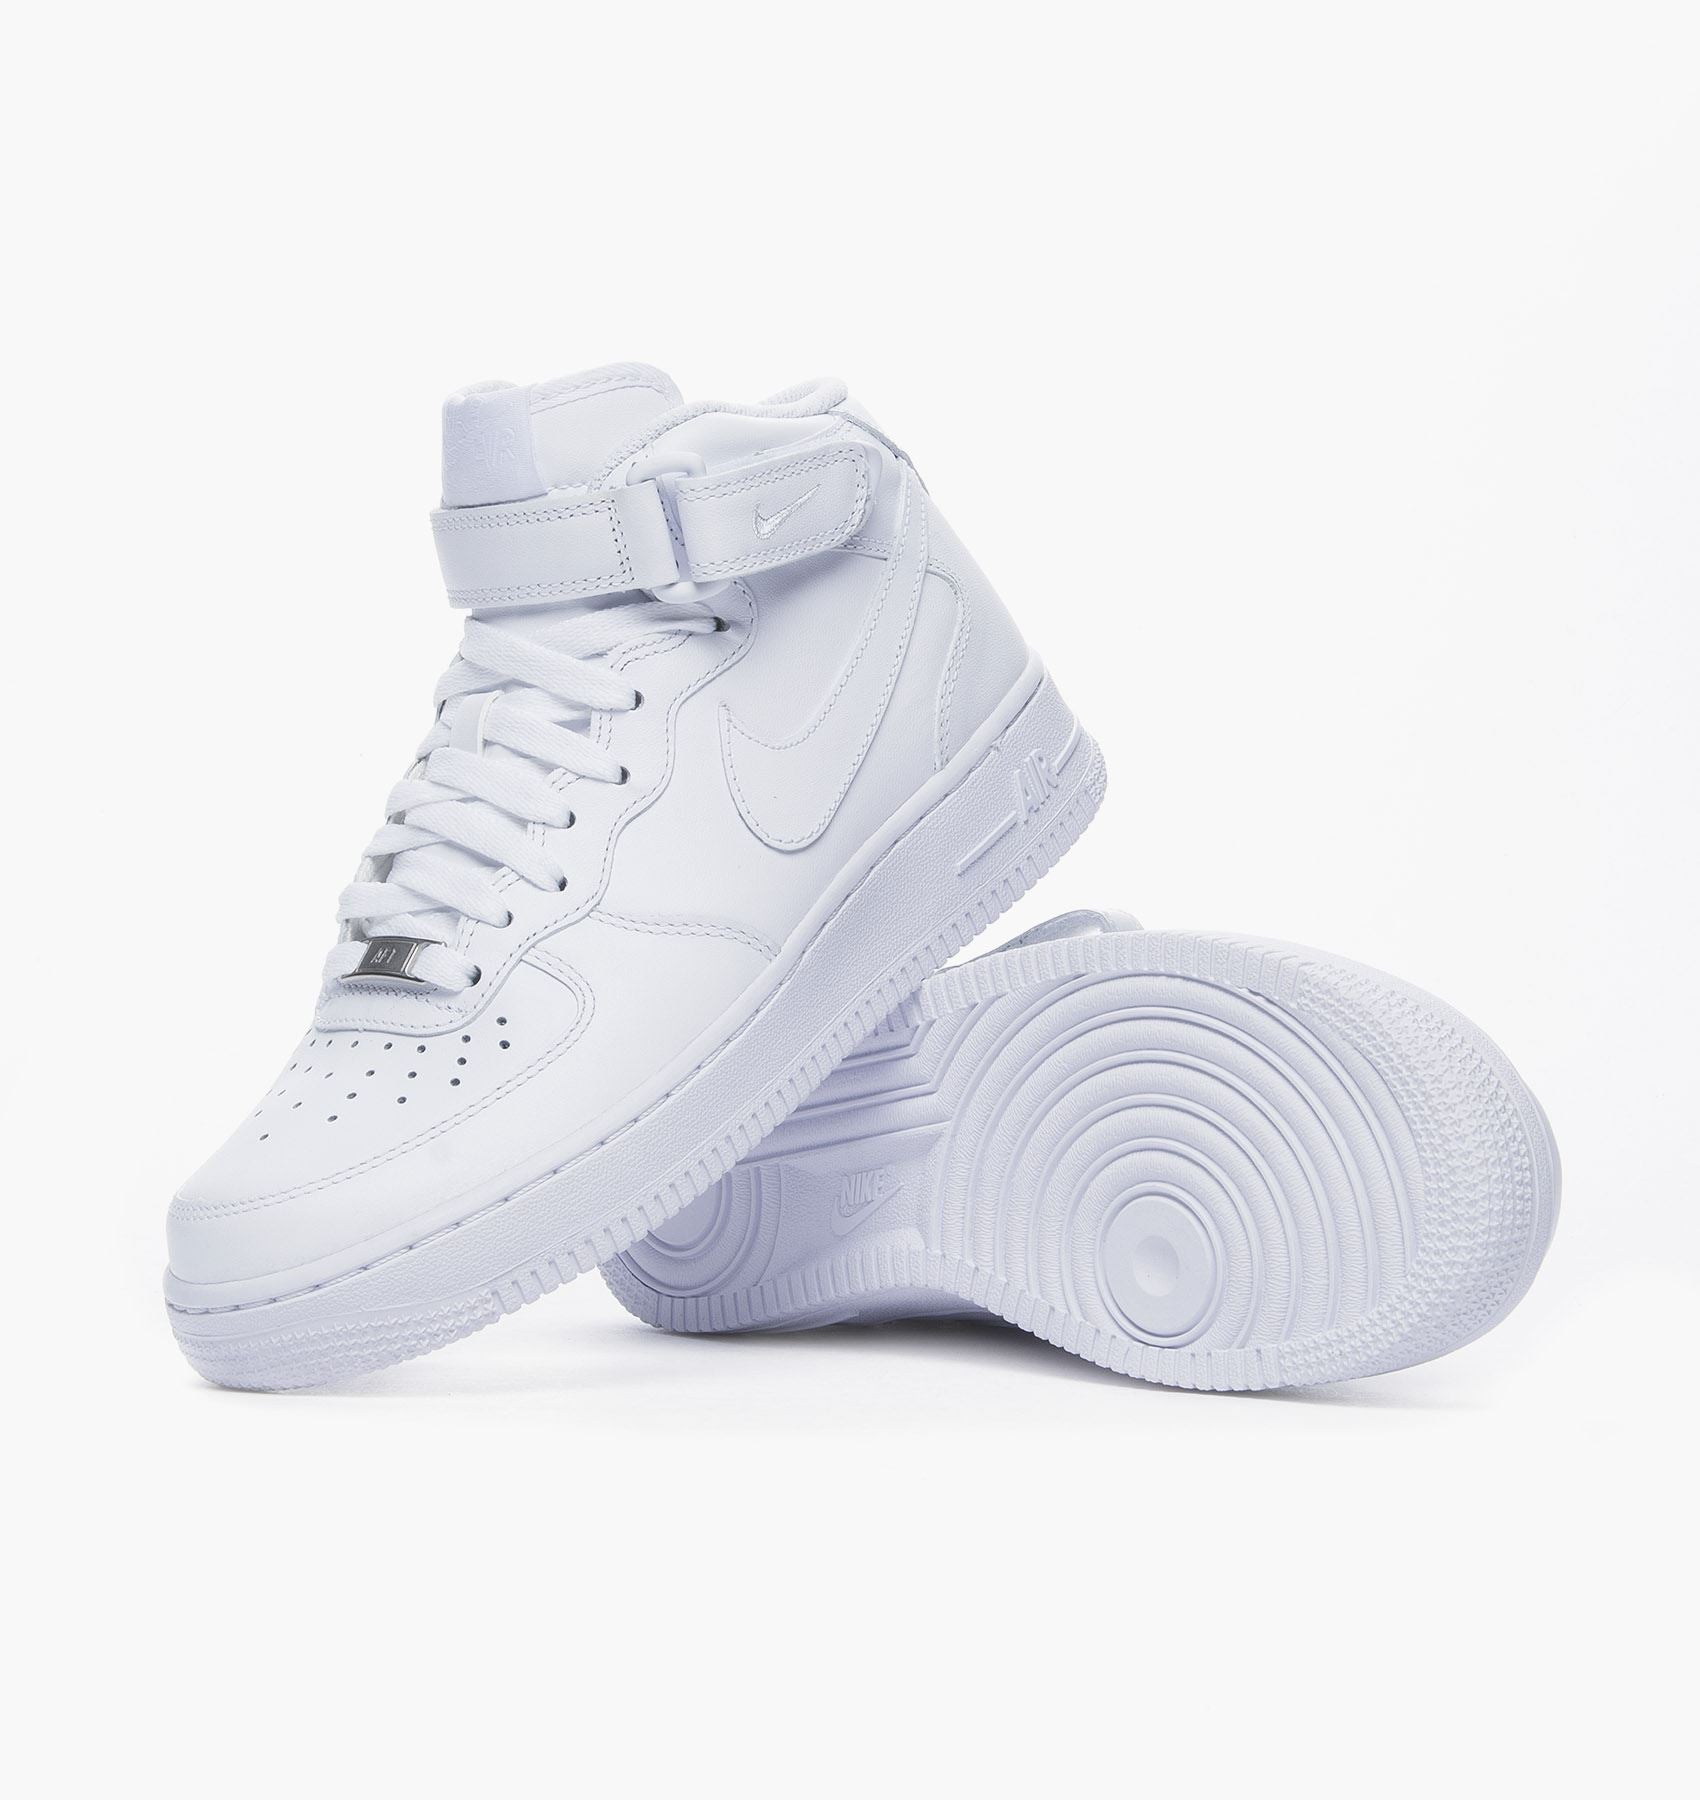 NIKE AIR FORCE 1 MID '07 LEATHER 366731 100 WO